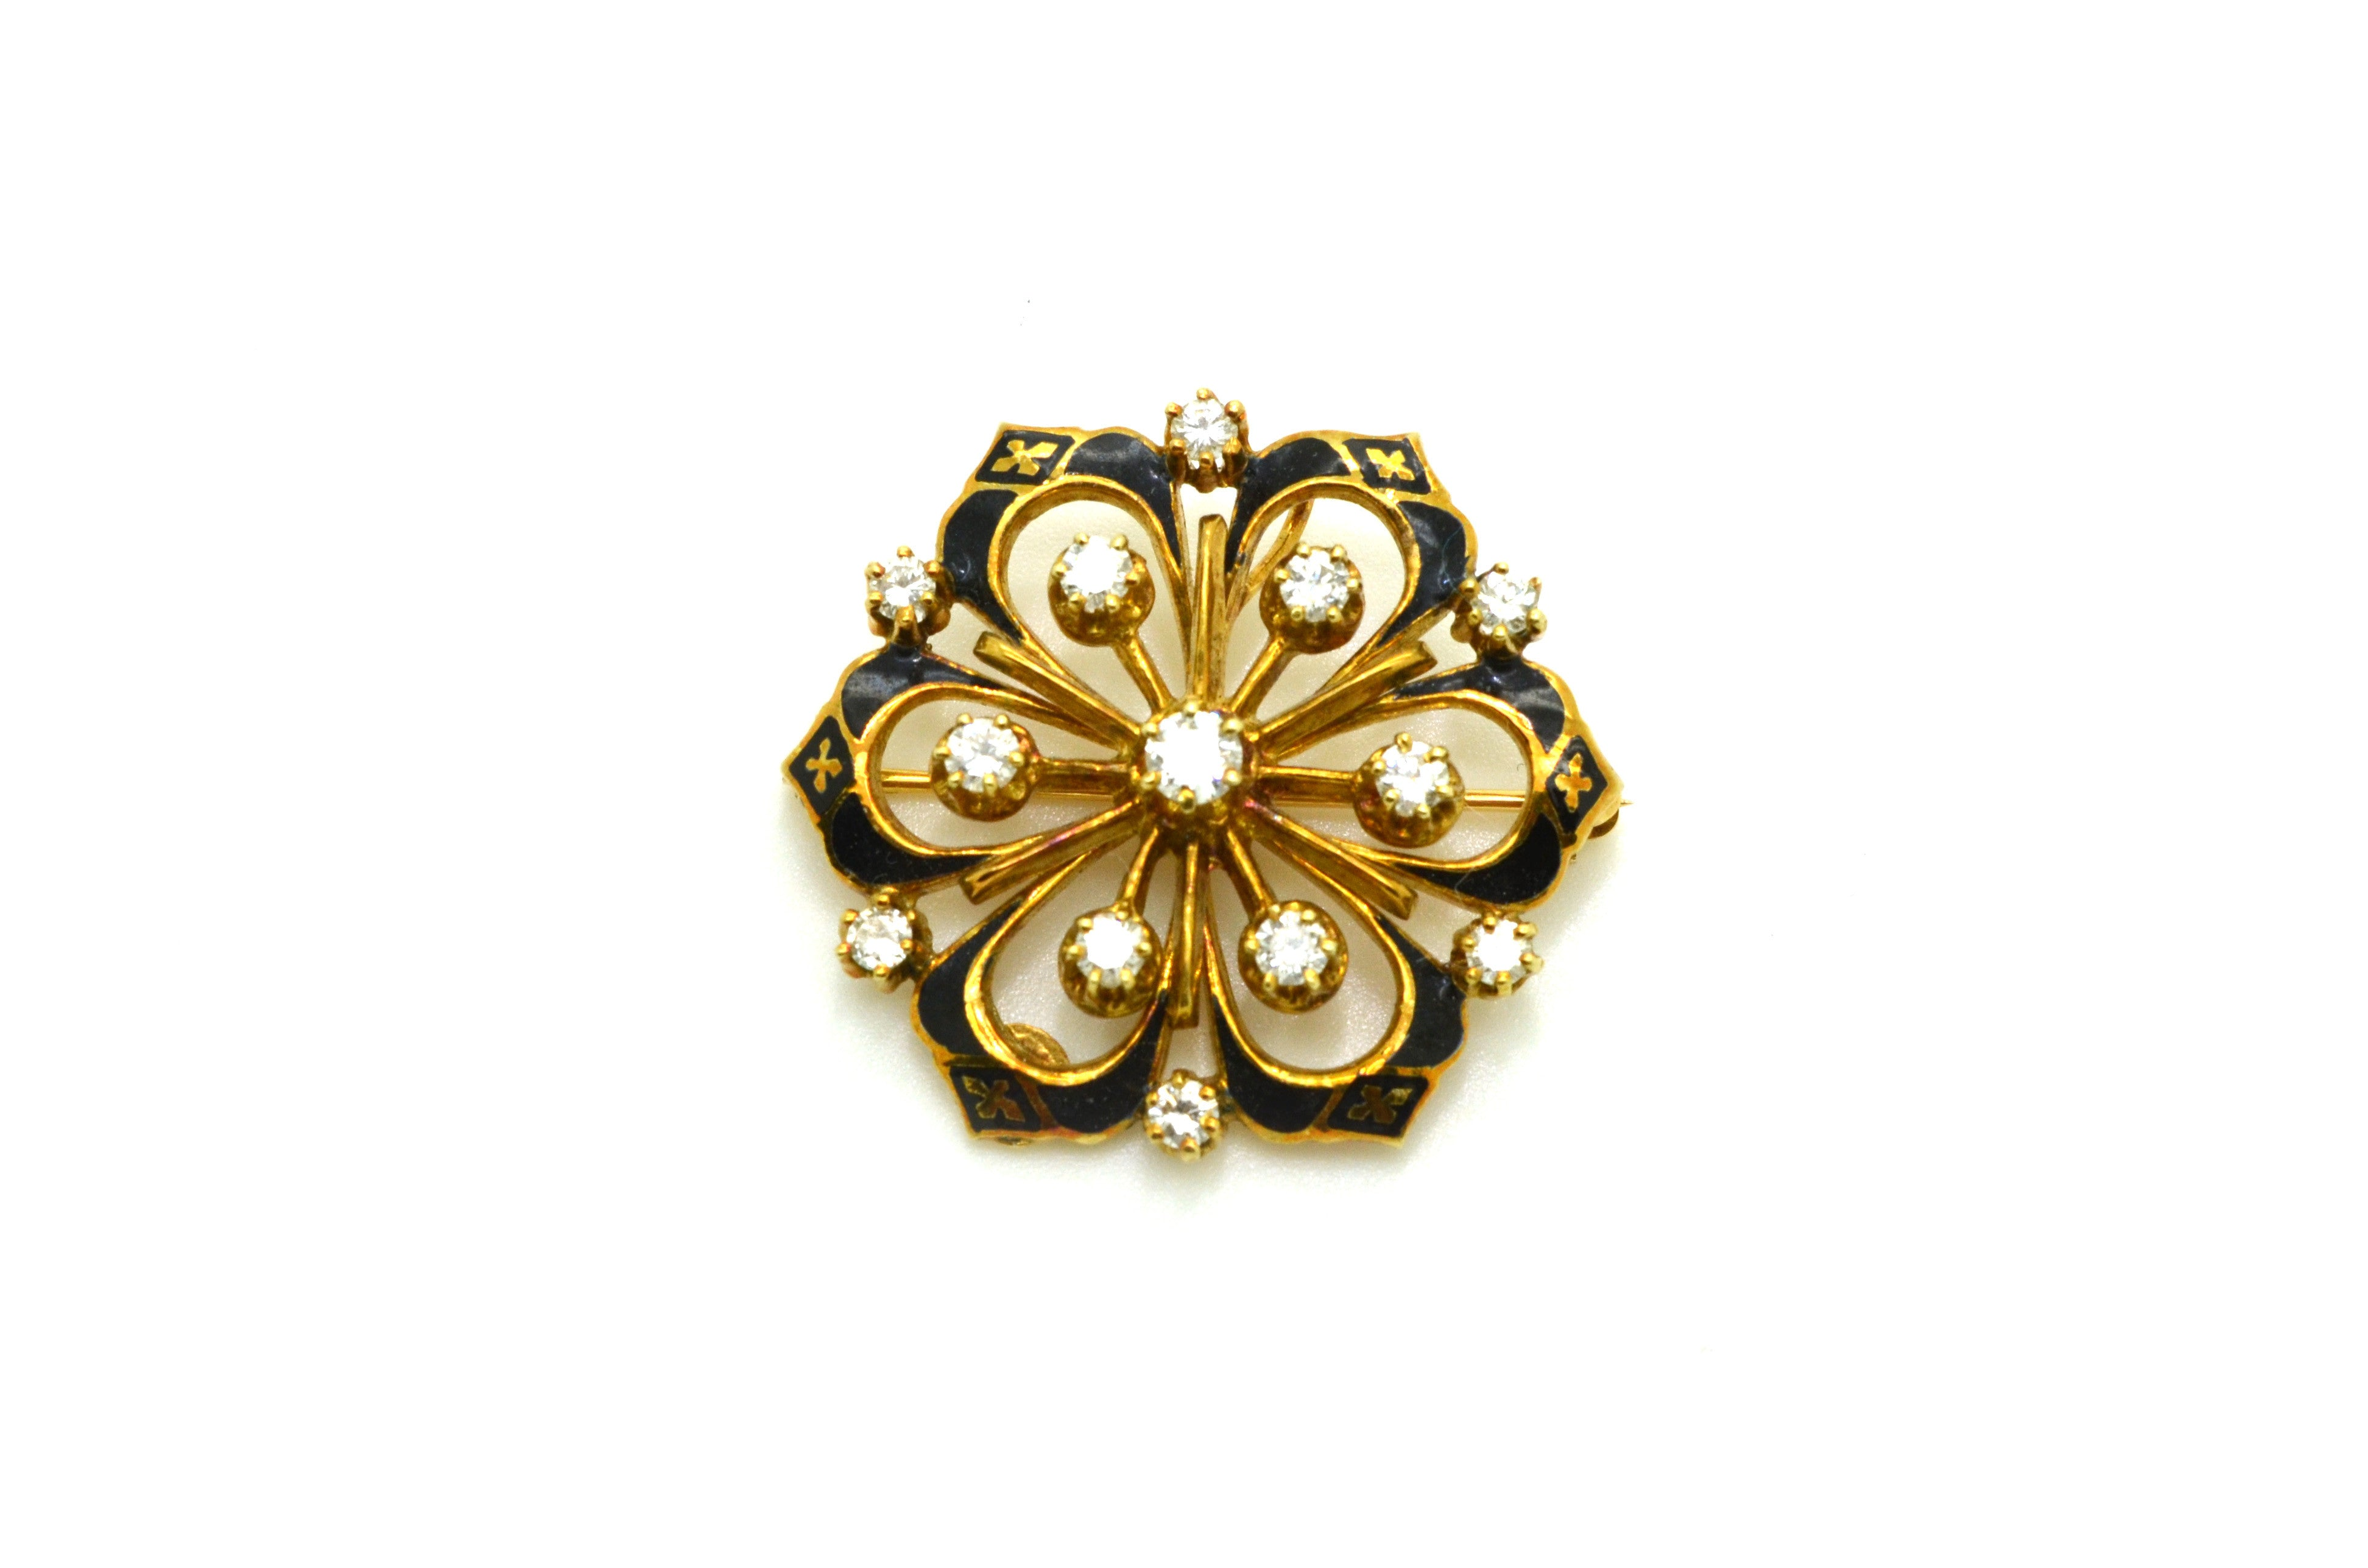 Victorian 14k Yellow Gold Diamond Star Pin Brooch with Black Enamel - .75 ct. tw